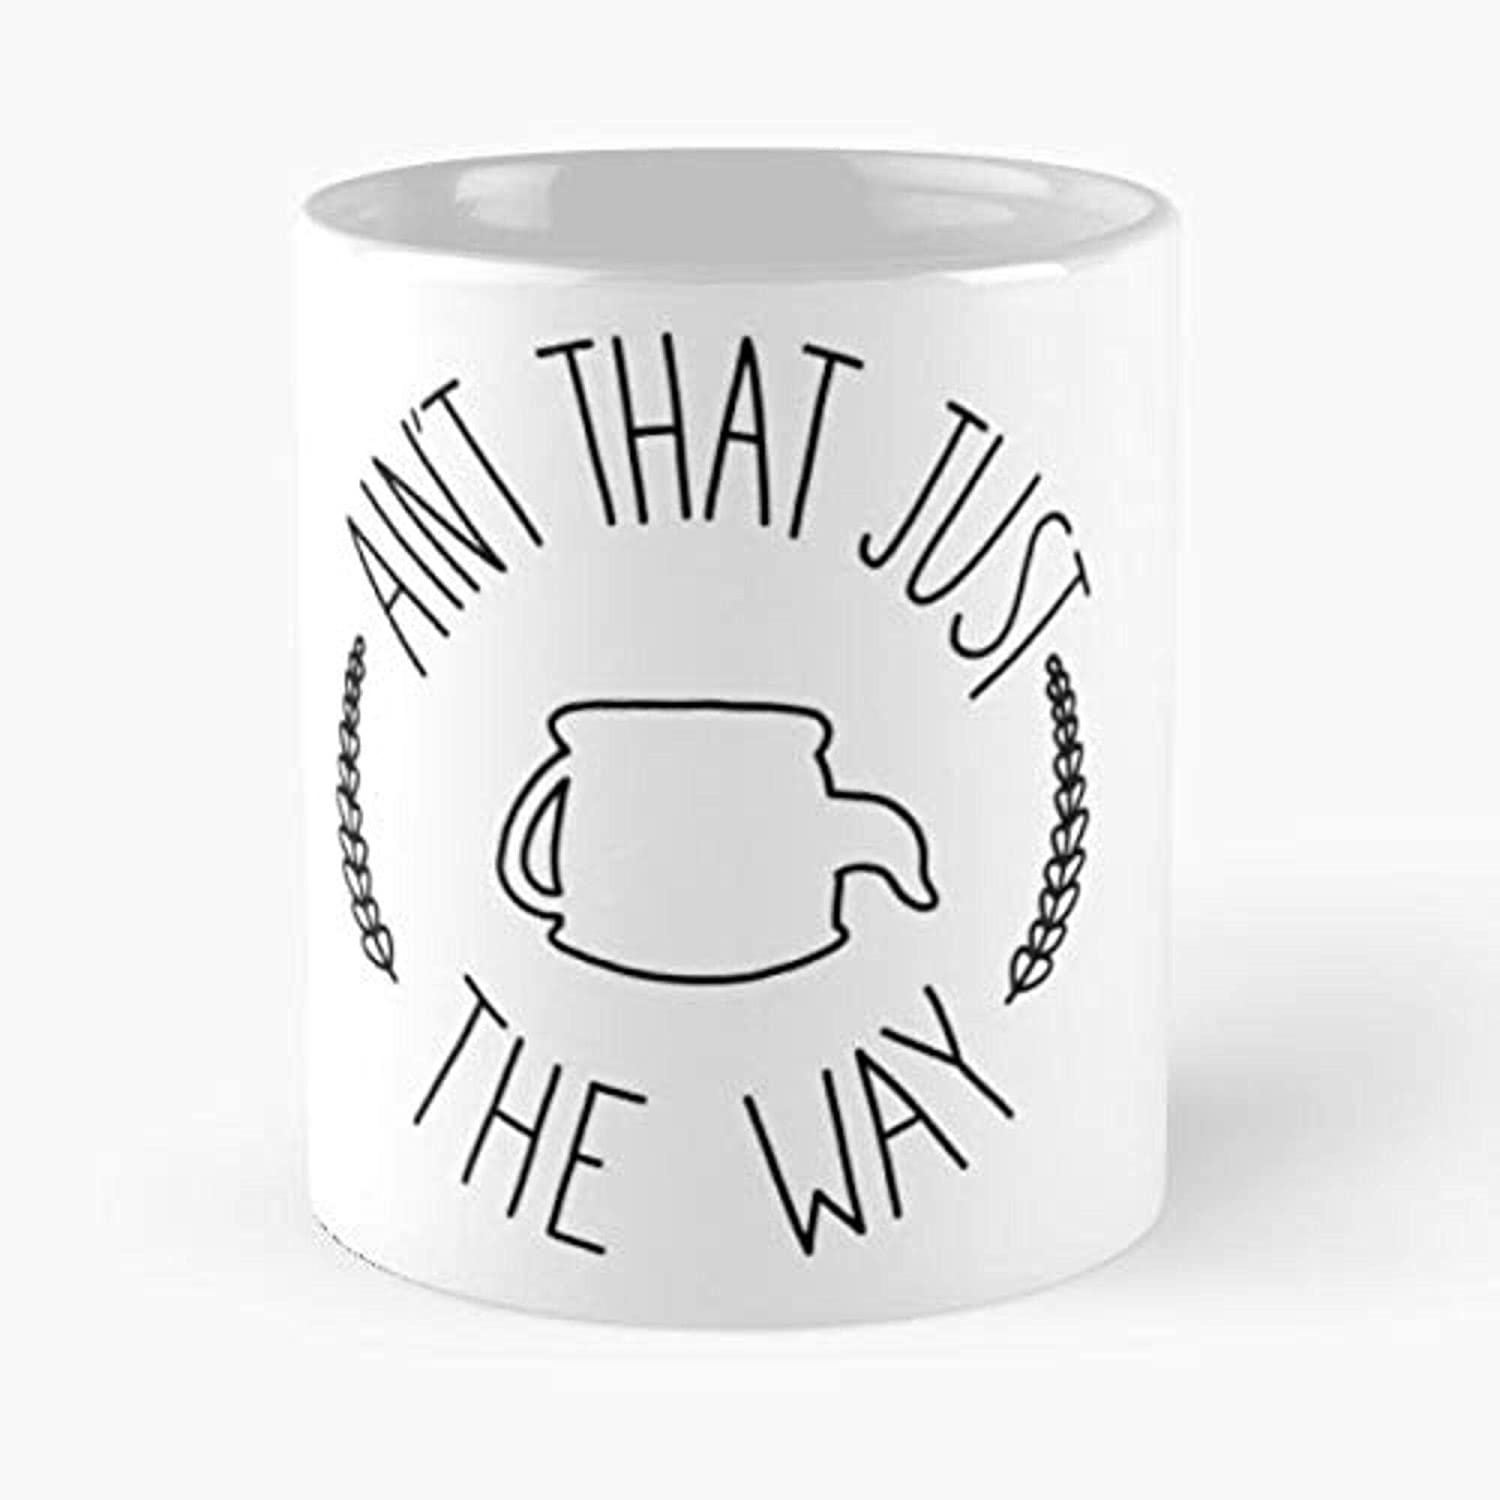 Greg Steven Cartoon Universe Over Wall That Just Wirt Beatrice Network The Way Aint Garden Best Mug Holds Hand 11oz Made From White Marble Ceramic ULJX1P